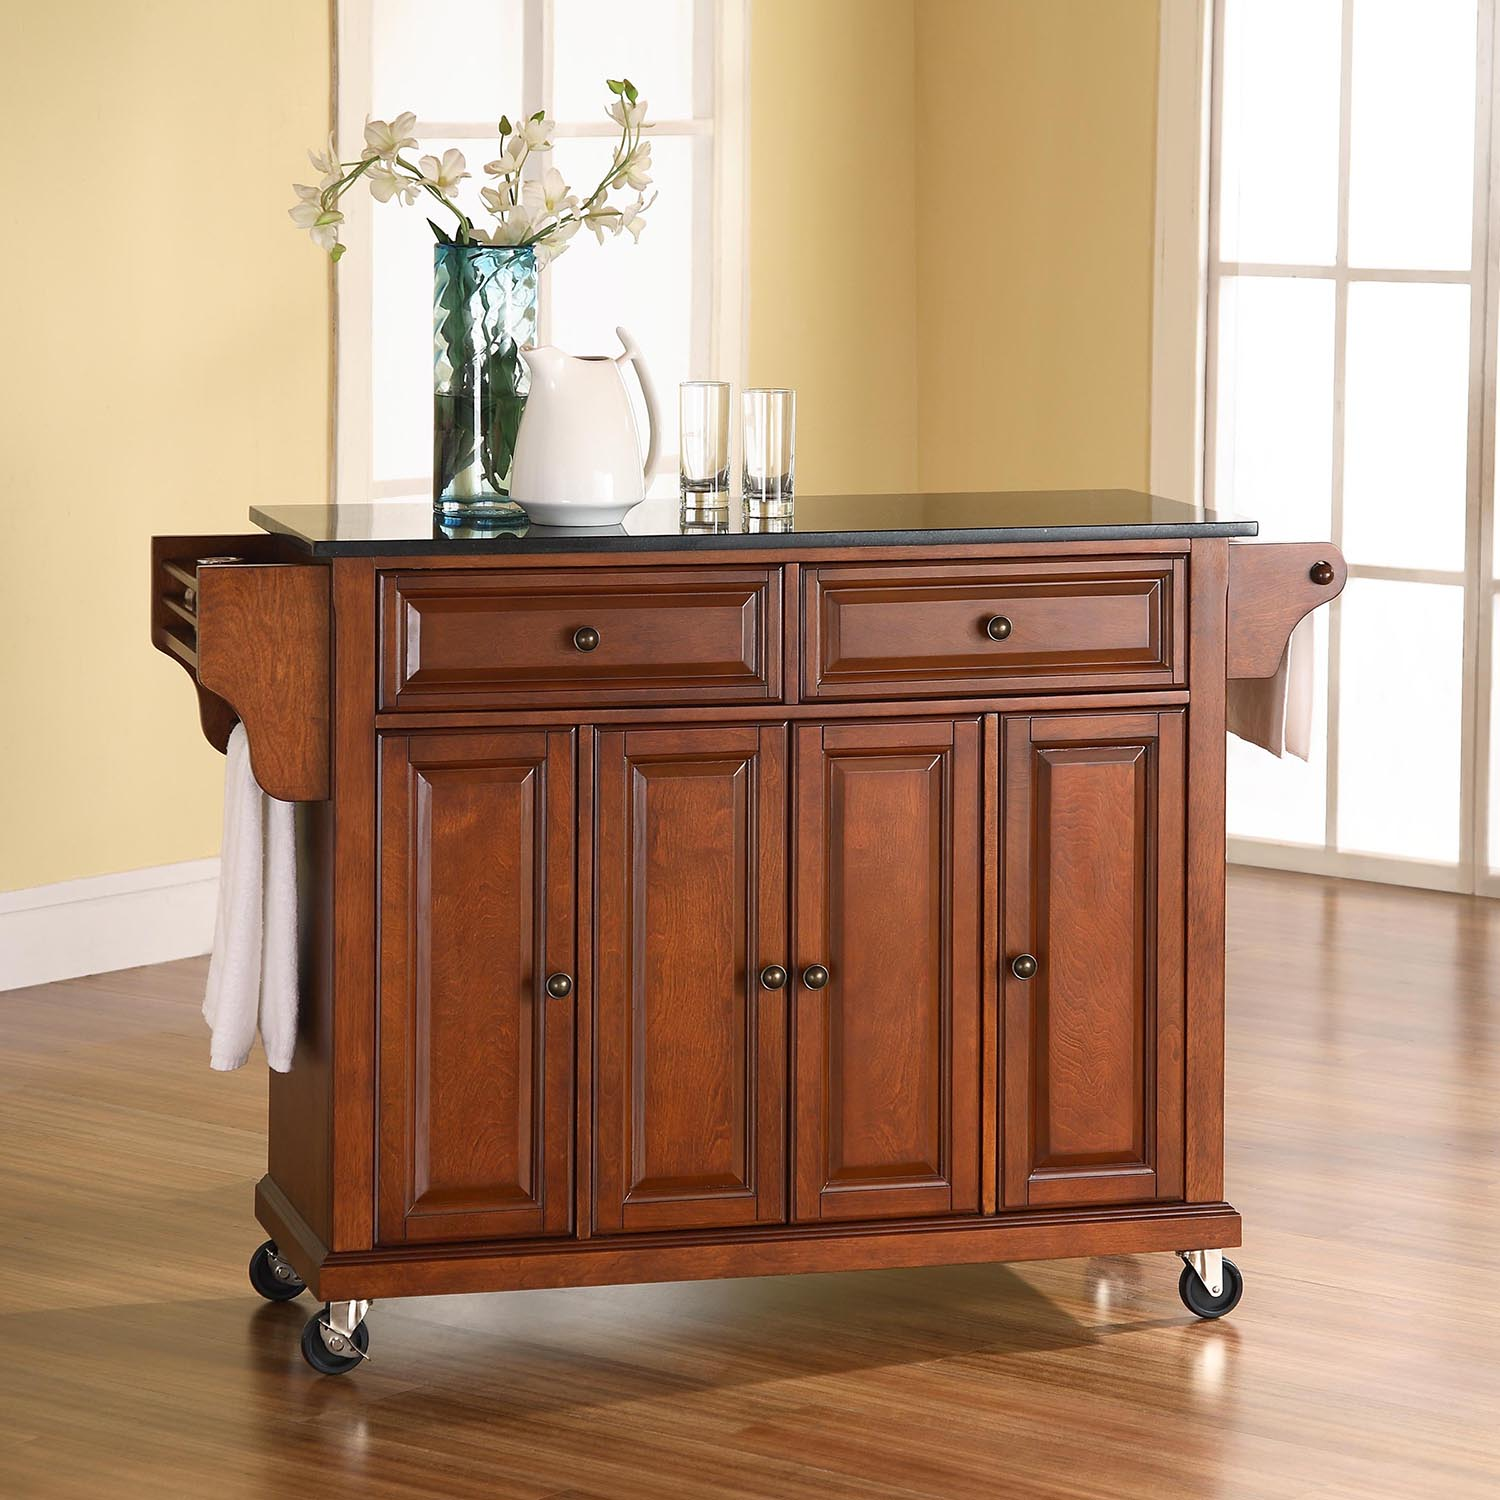 Solid Black Granite Top Kitchen Cart Island Casters